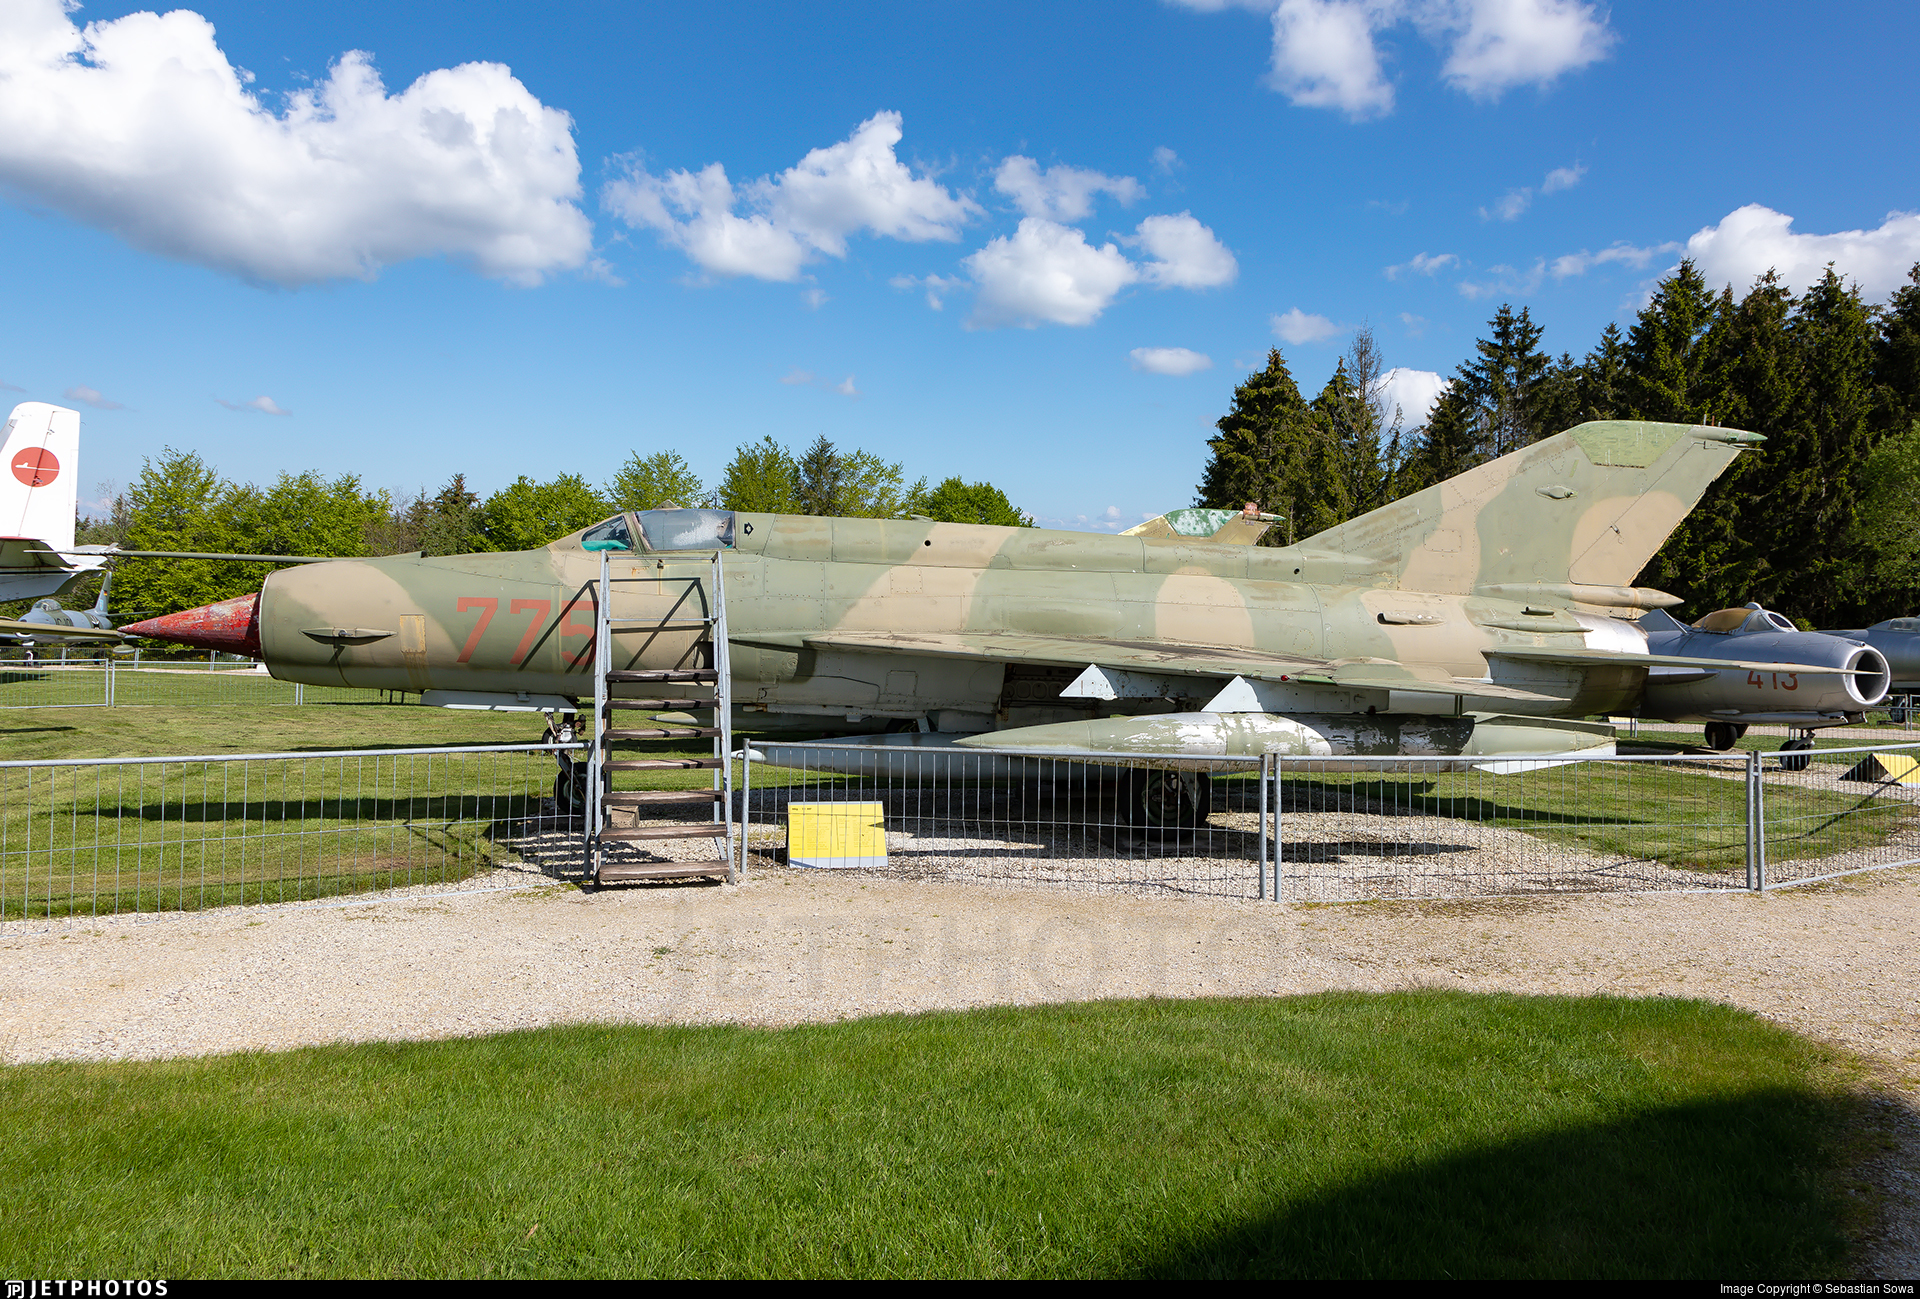 23-44 - Mikoyan-Gurevich MiG-21MF Fishbed J - Germany - Air Force